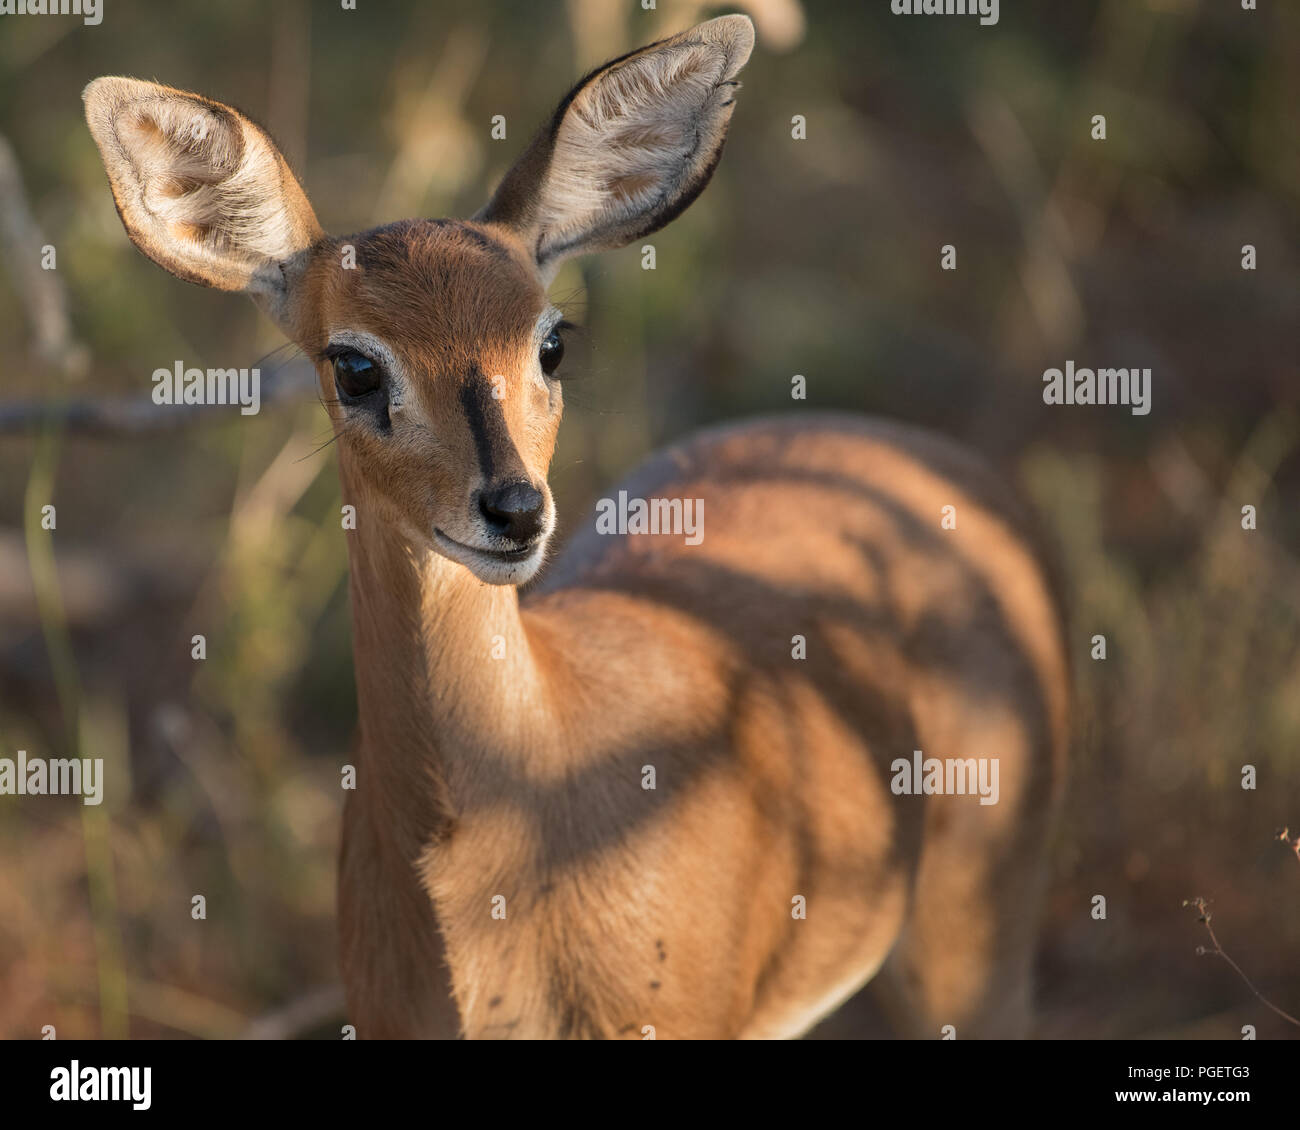 Front view of a Steenbok Antelope looking into the camera. - Stock Image